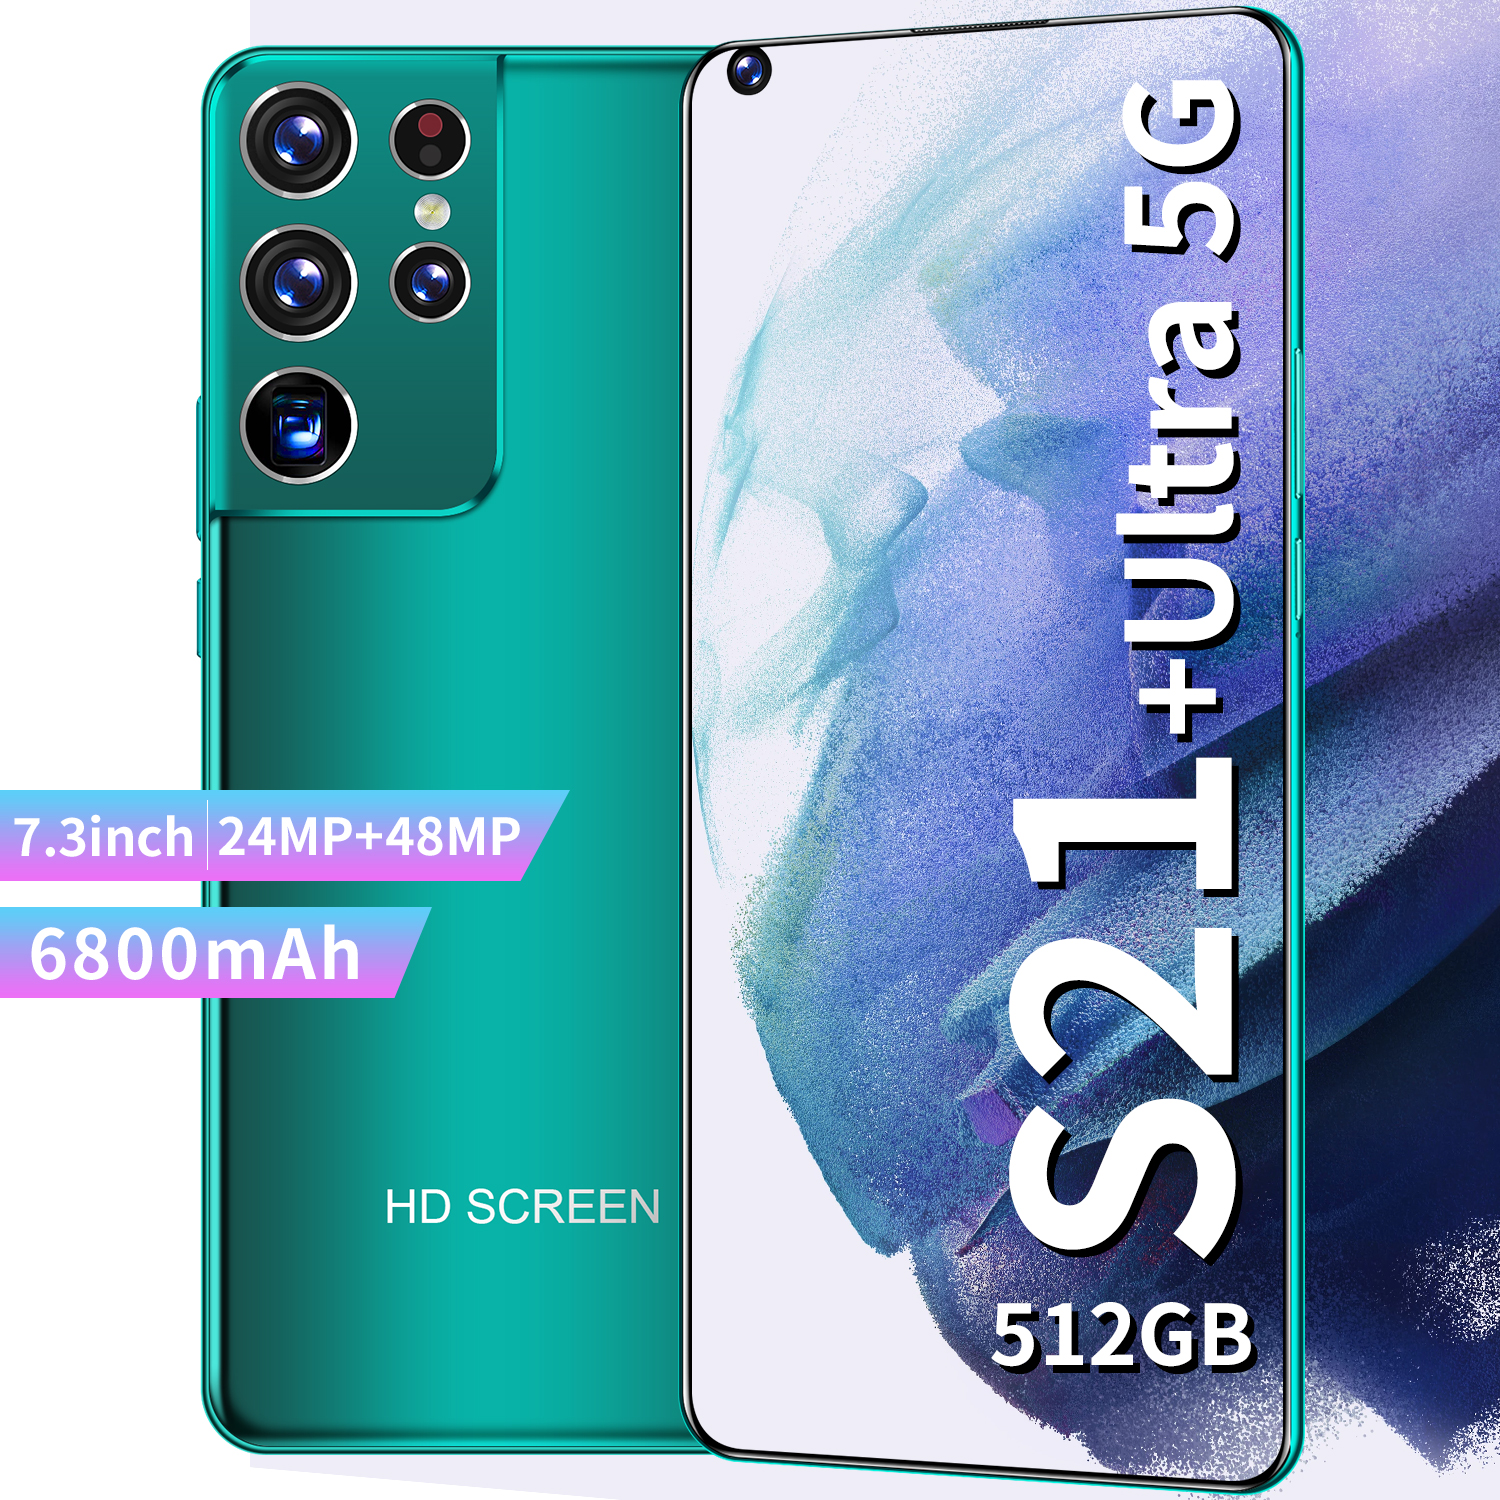 2021 S21 Utra 7.3 Inch Full Screen Smartphone Global Version 12G 512GB Android 10 GPS Cellphone Unlocked Dual SIM Mobile Phone